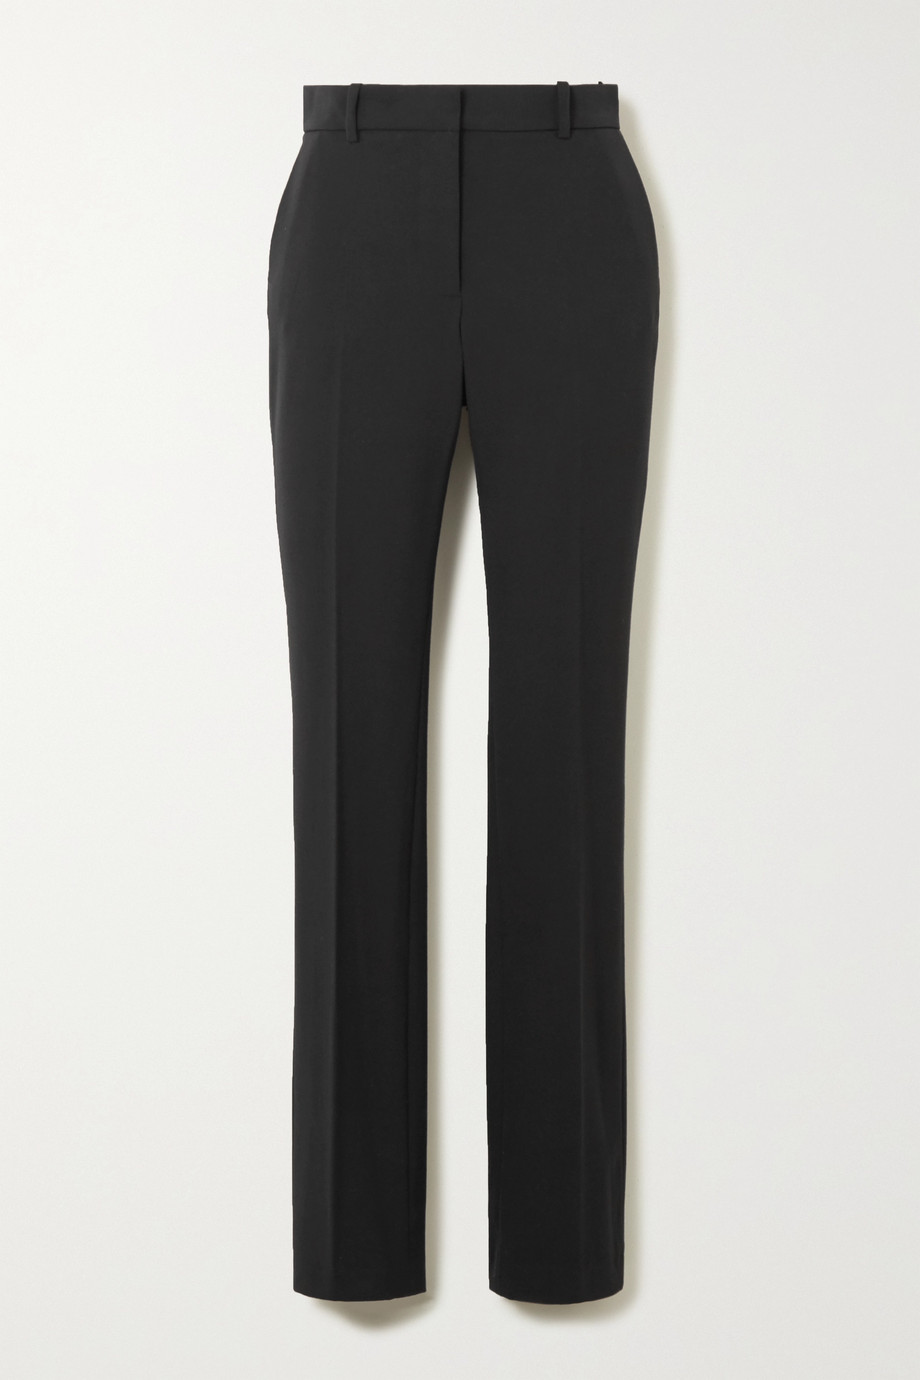 Joseph Cole wool-blend twill tapered pants